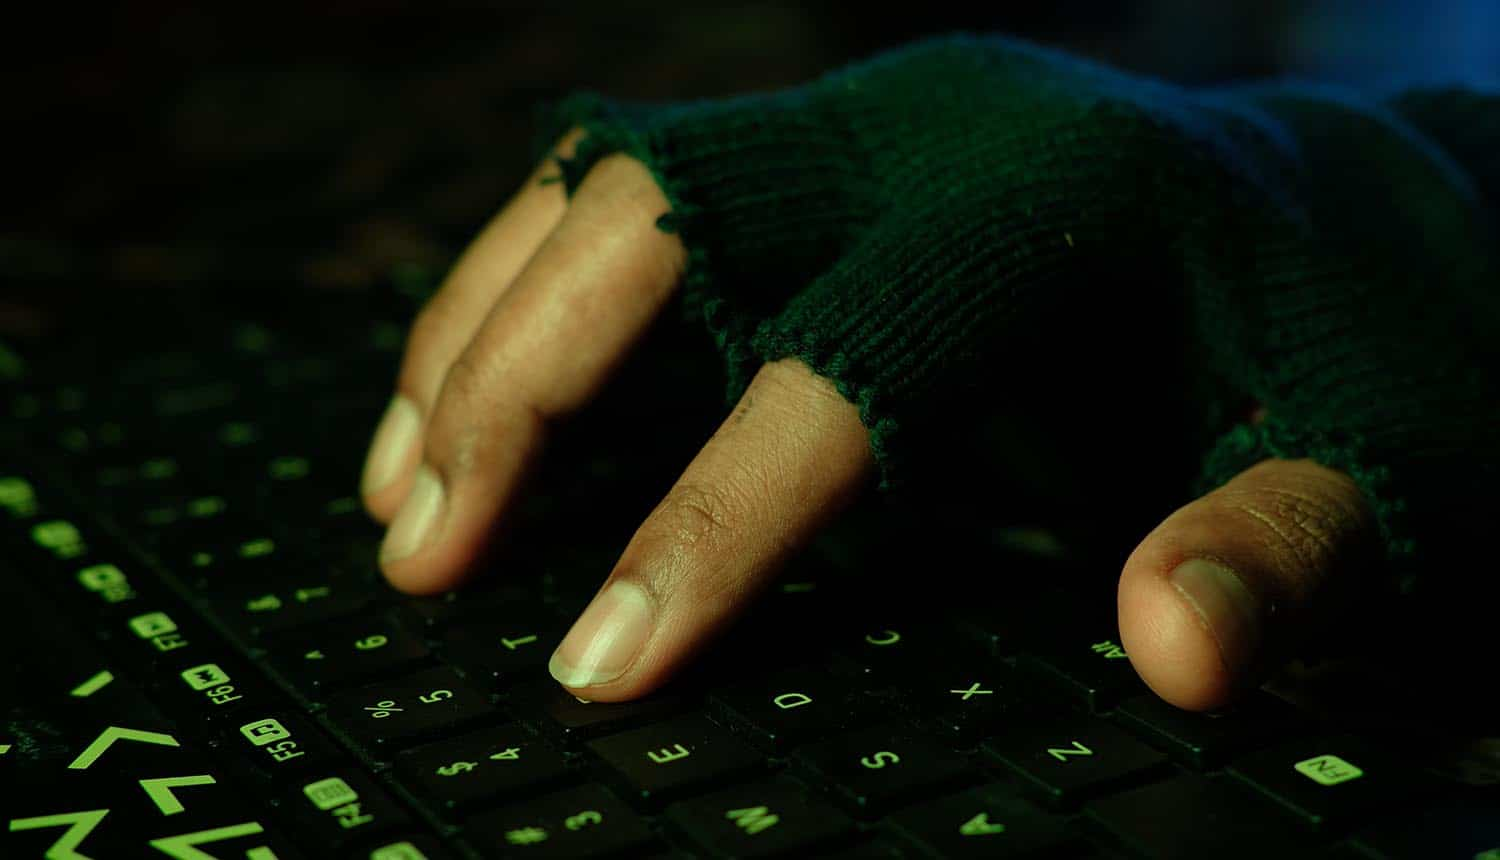 Hacker hand stealing data from laptop showing sale of data breach records on hacker forum